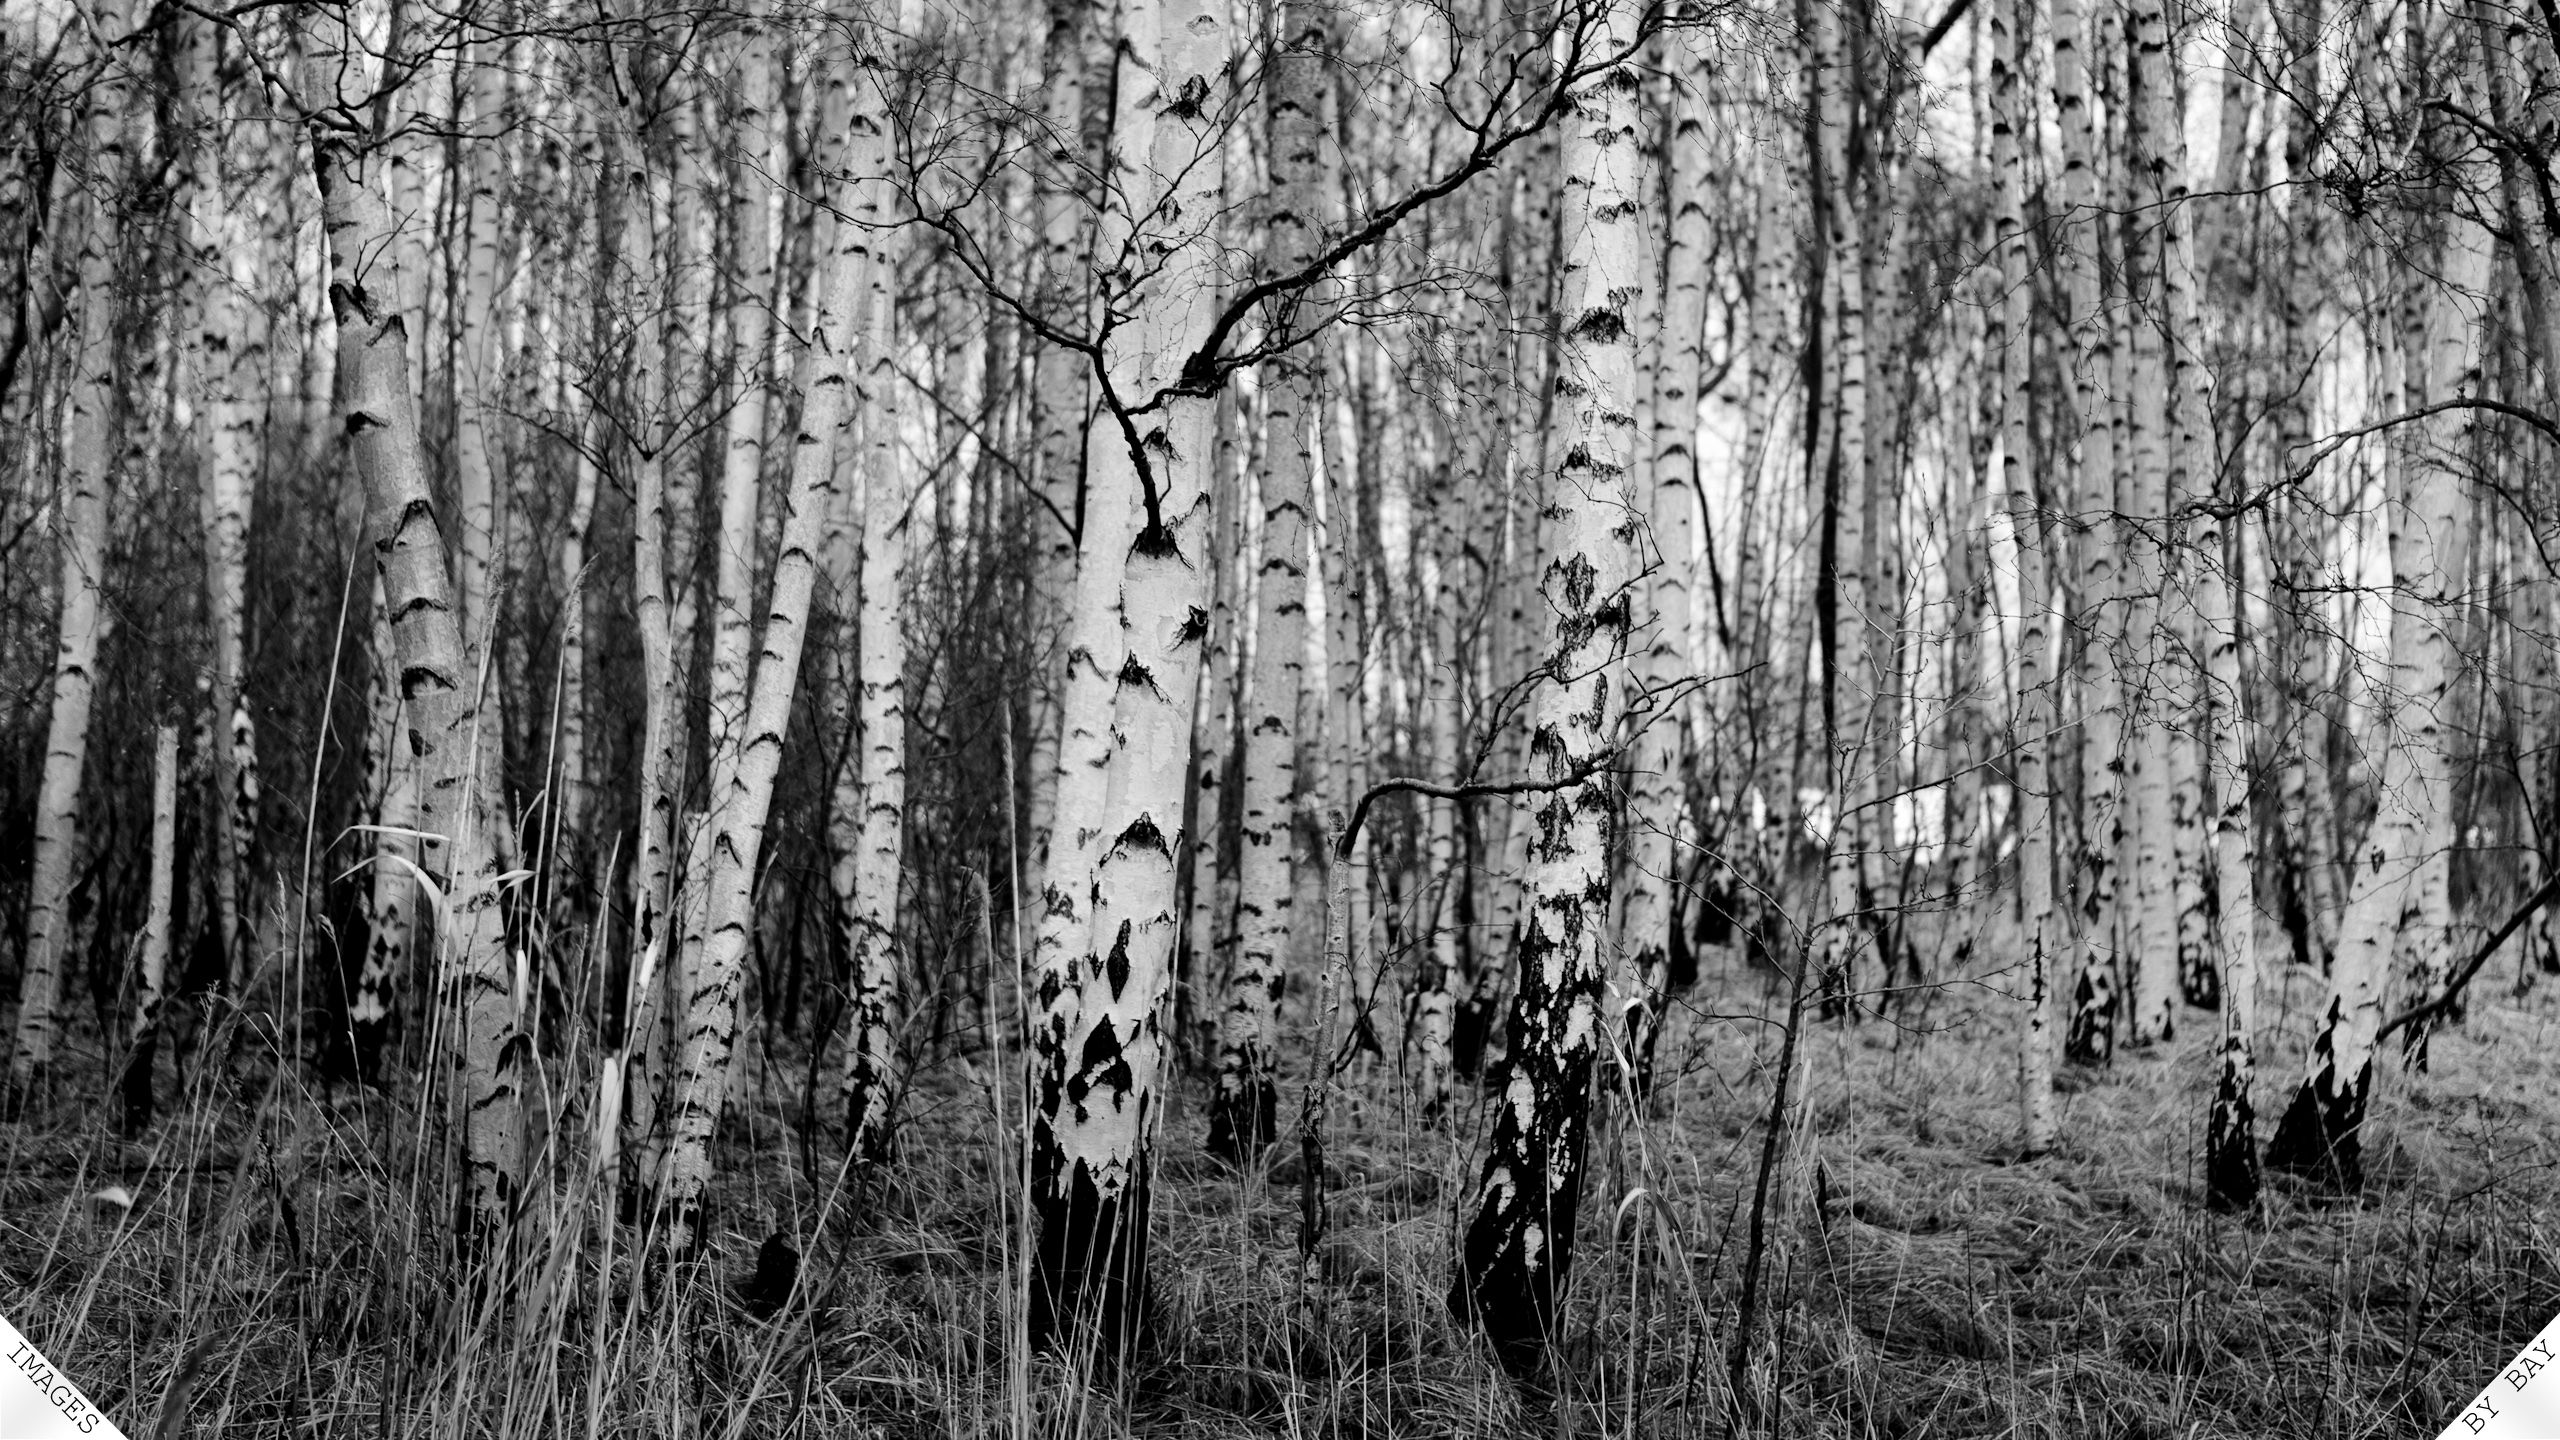 Black And White Mist Forests Wallpaper Tree Wallpaper Iphone Forest Wallpaper Iphone Black And White Wallpaper Iphone